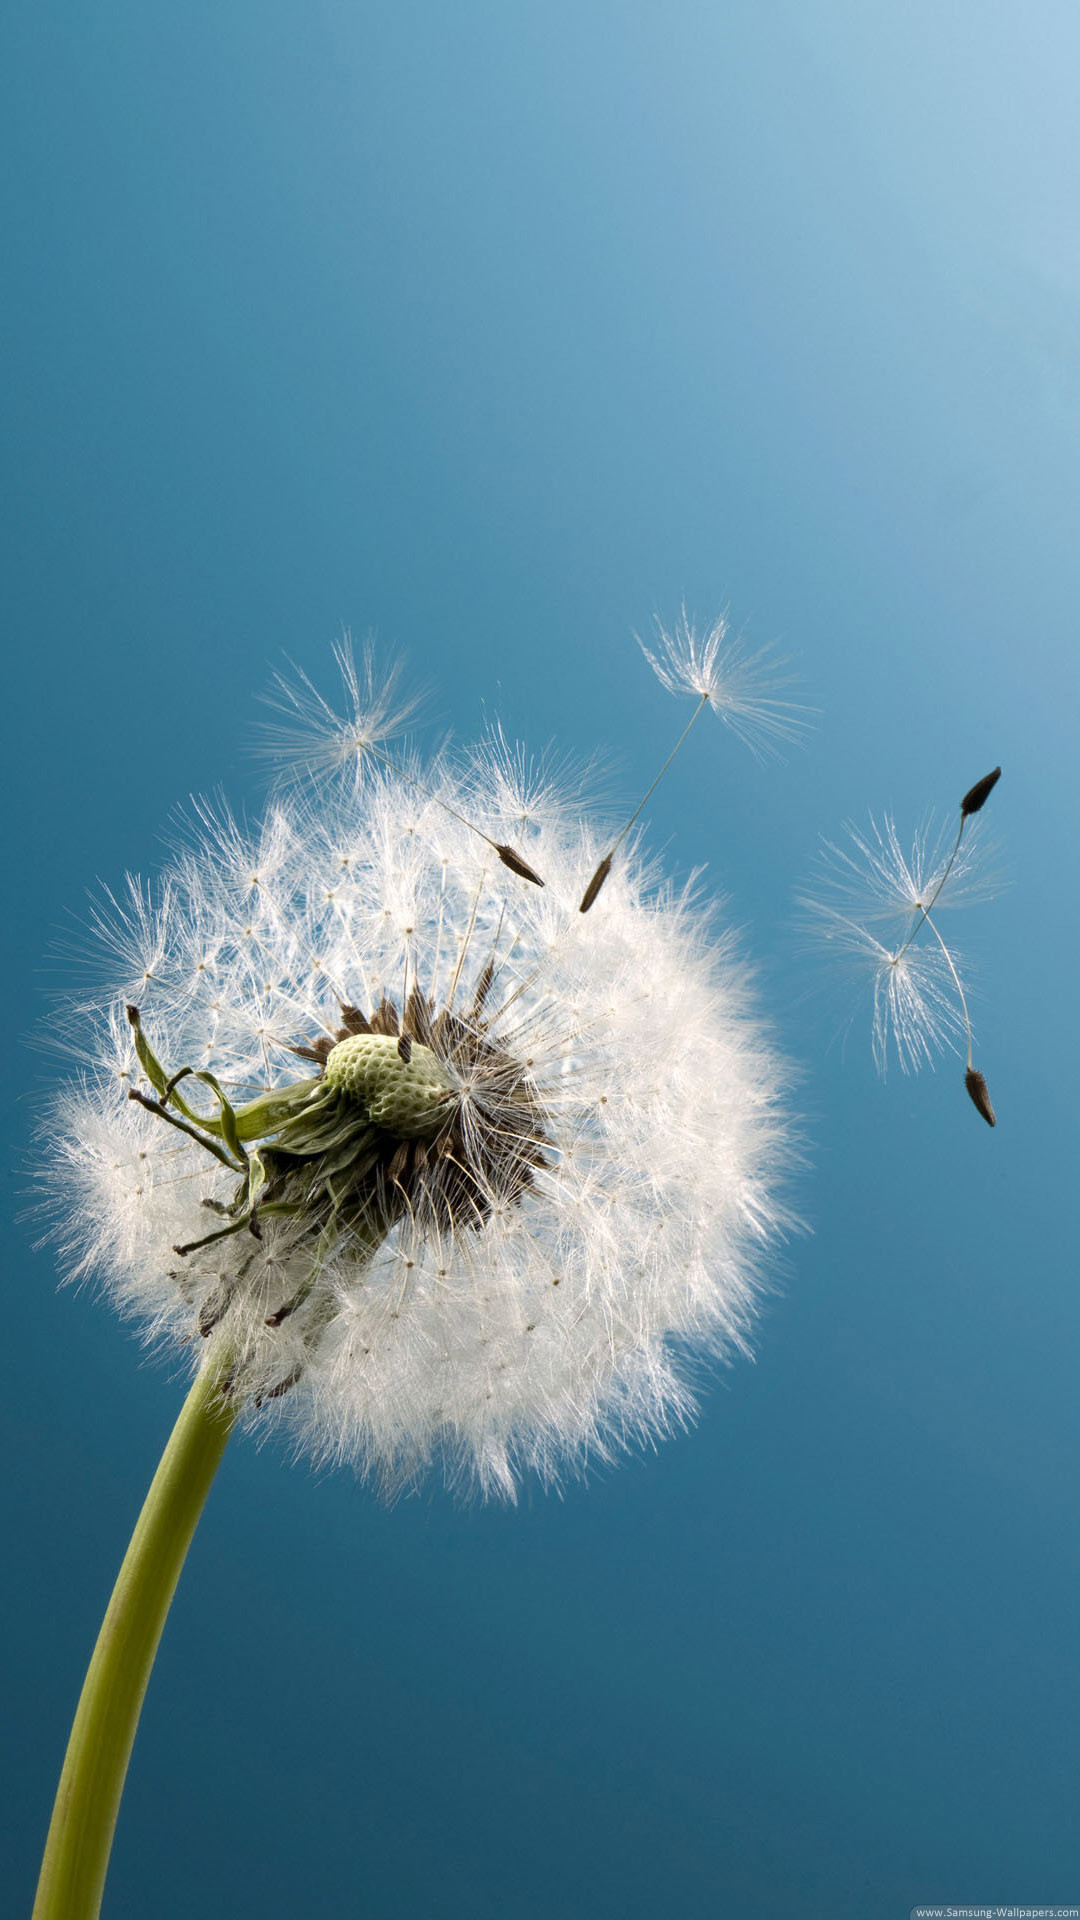 1080x1920 dandelion live wallpaper apk for iphone download android apk